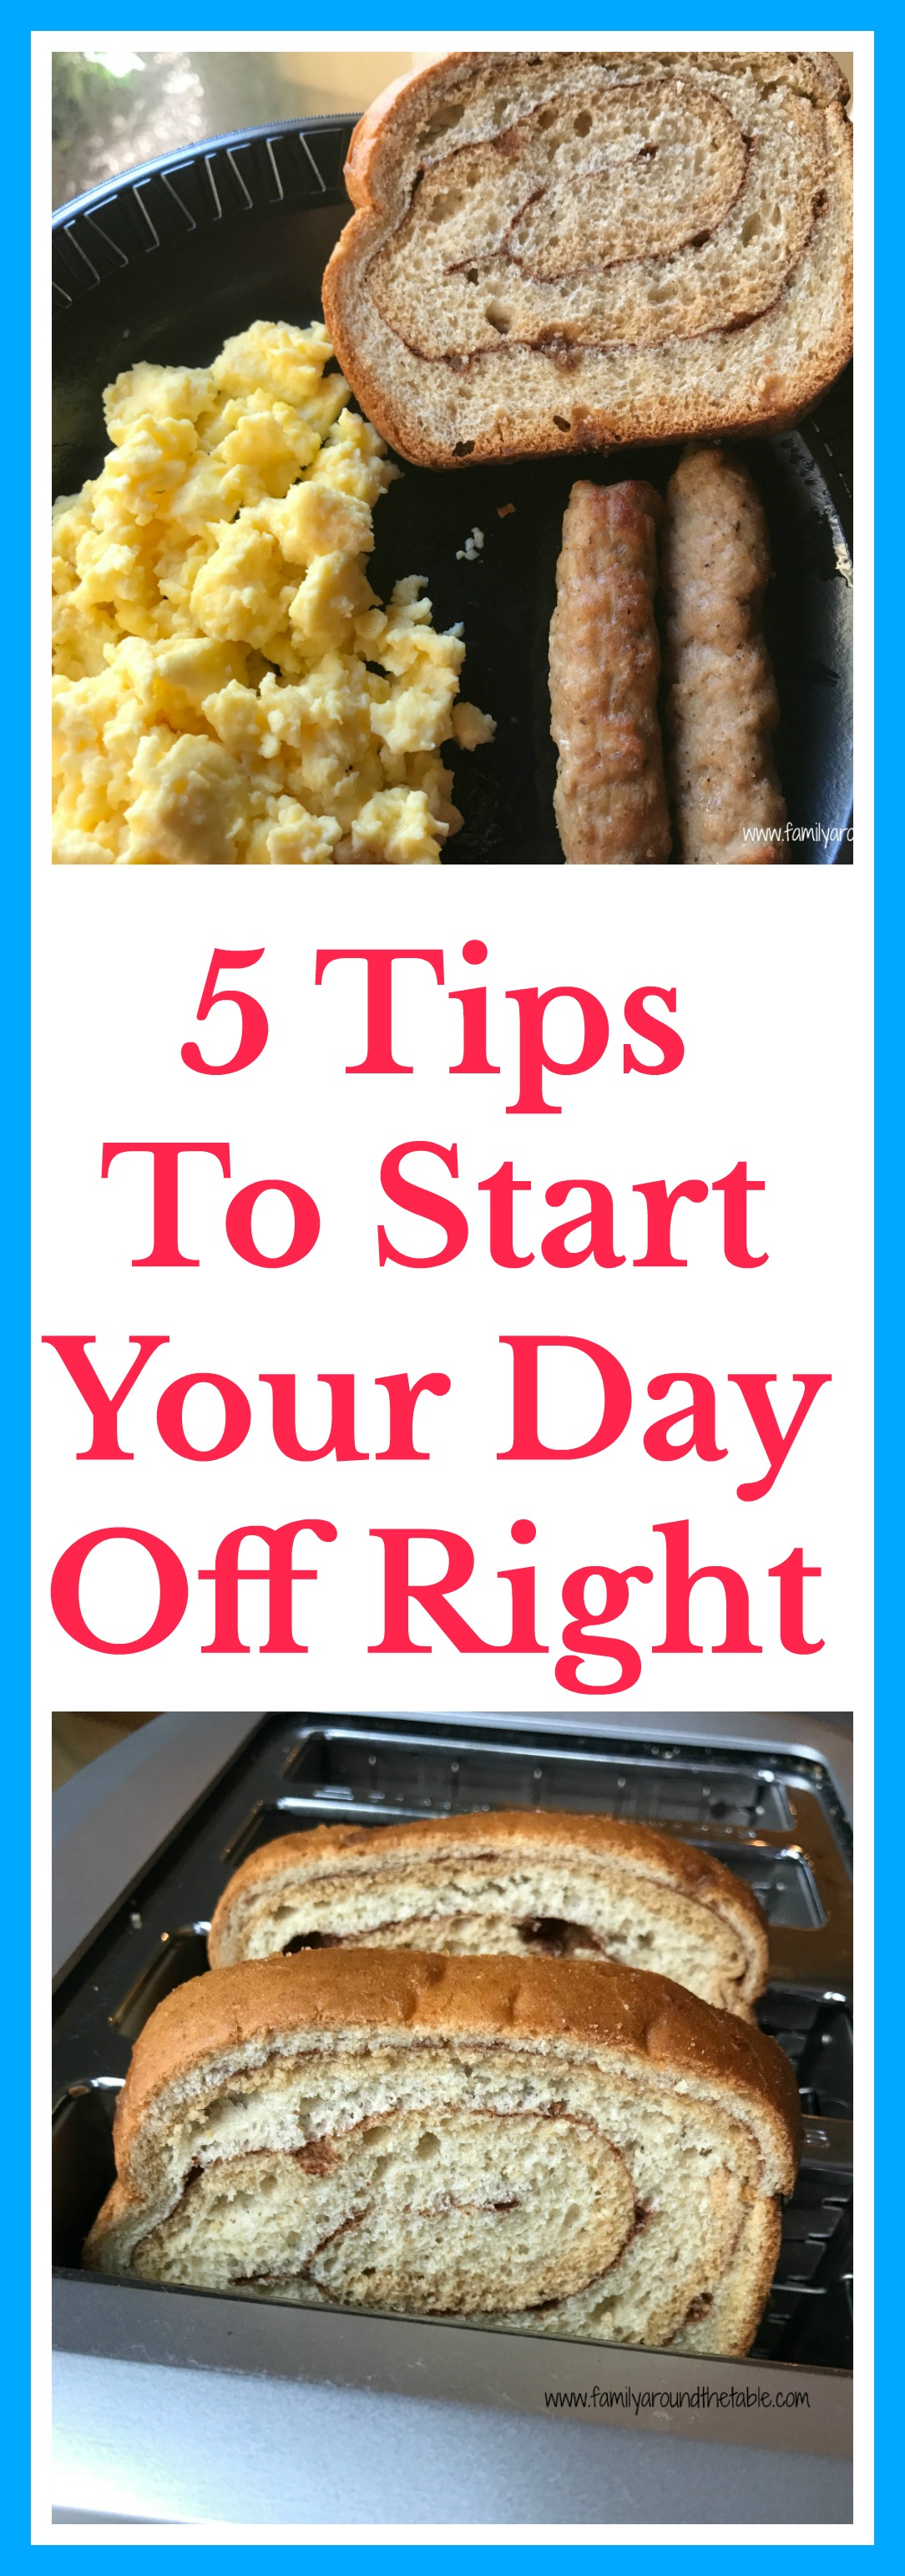 5 Tips to Start Your Day Off Right.